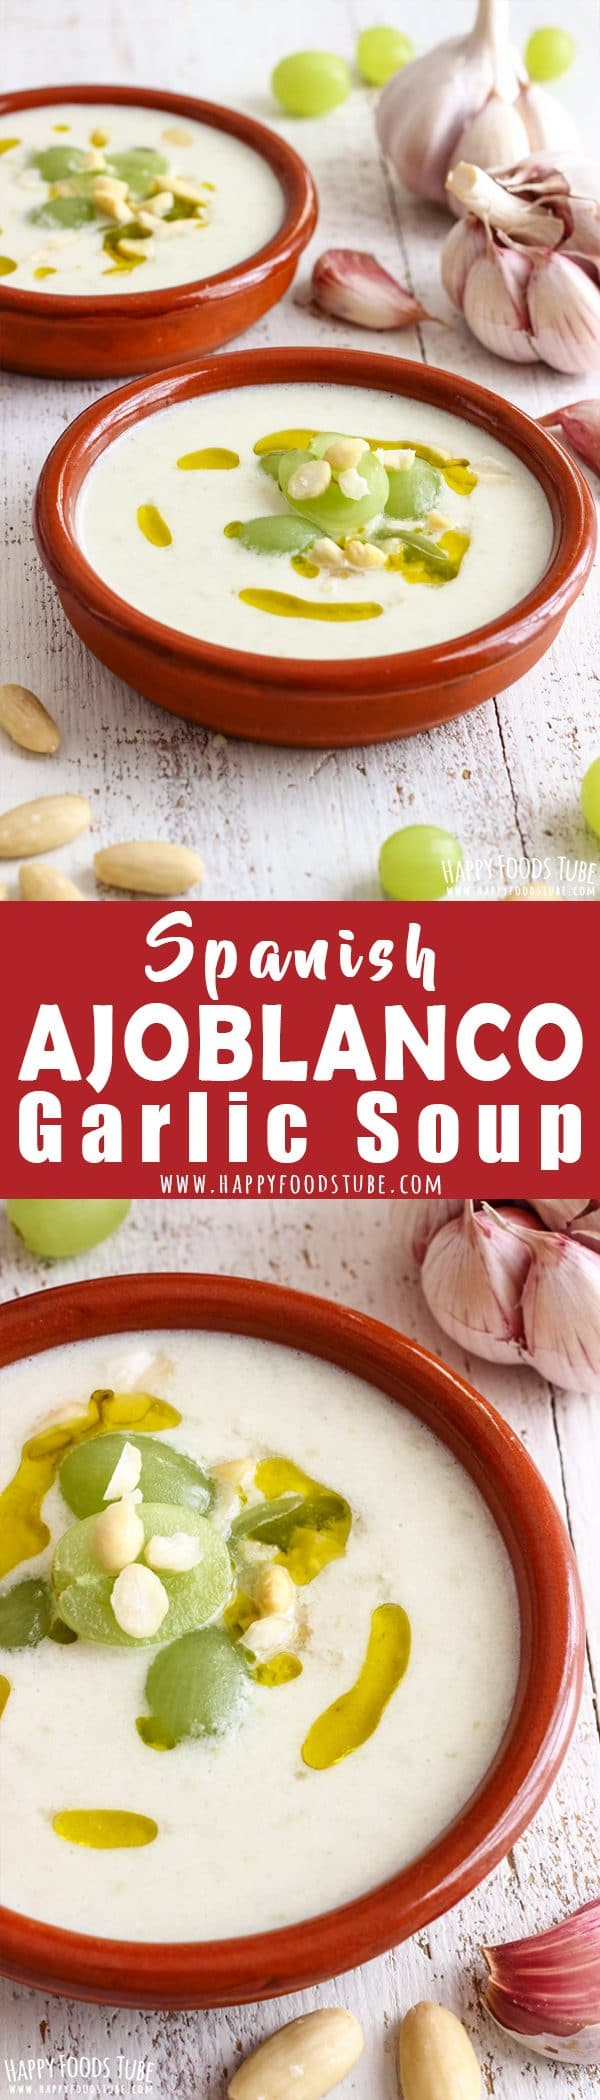 Spanish Ajoblanco Garlic Soup Recipe Picture